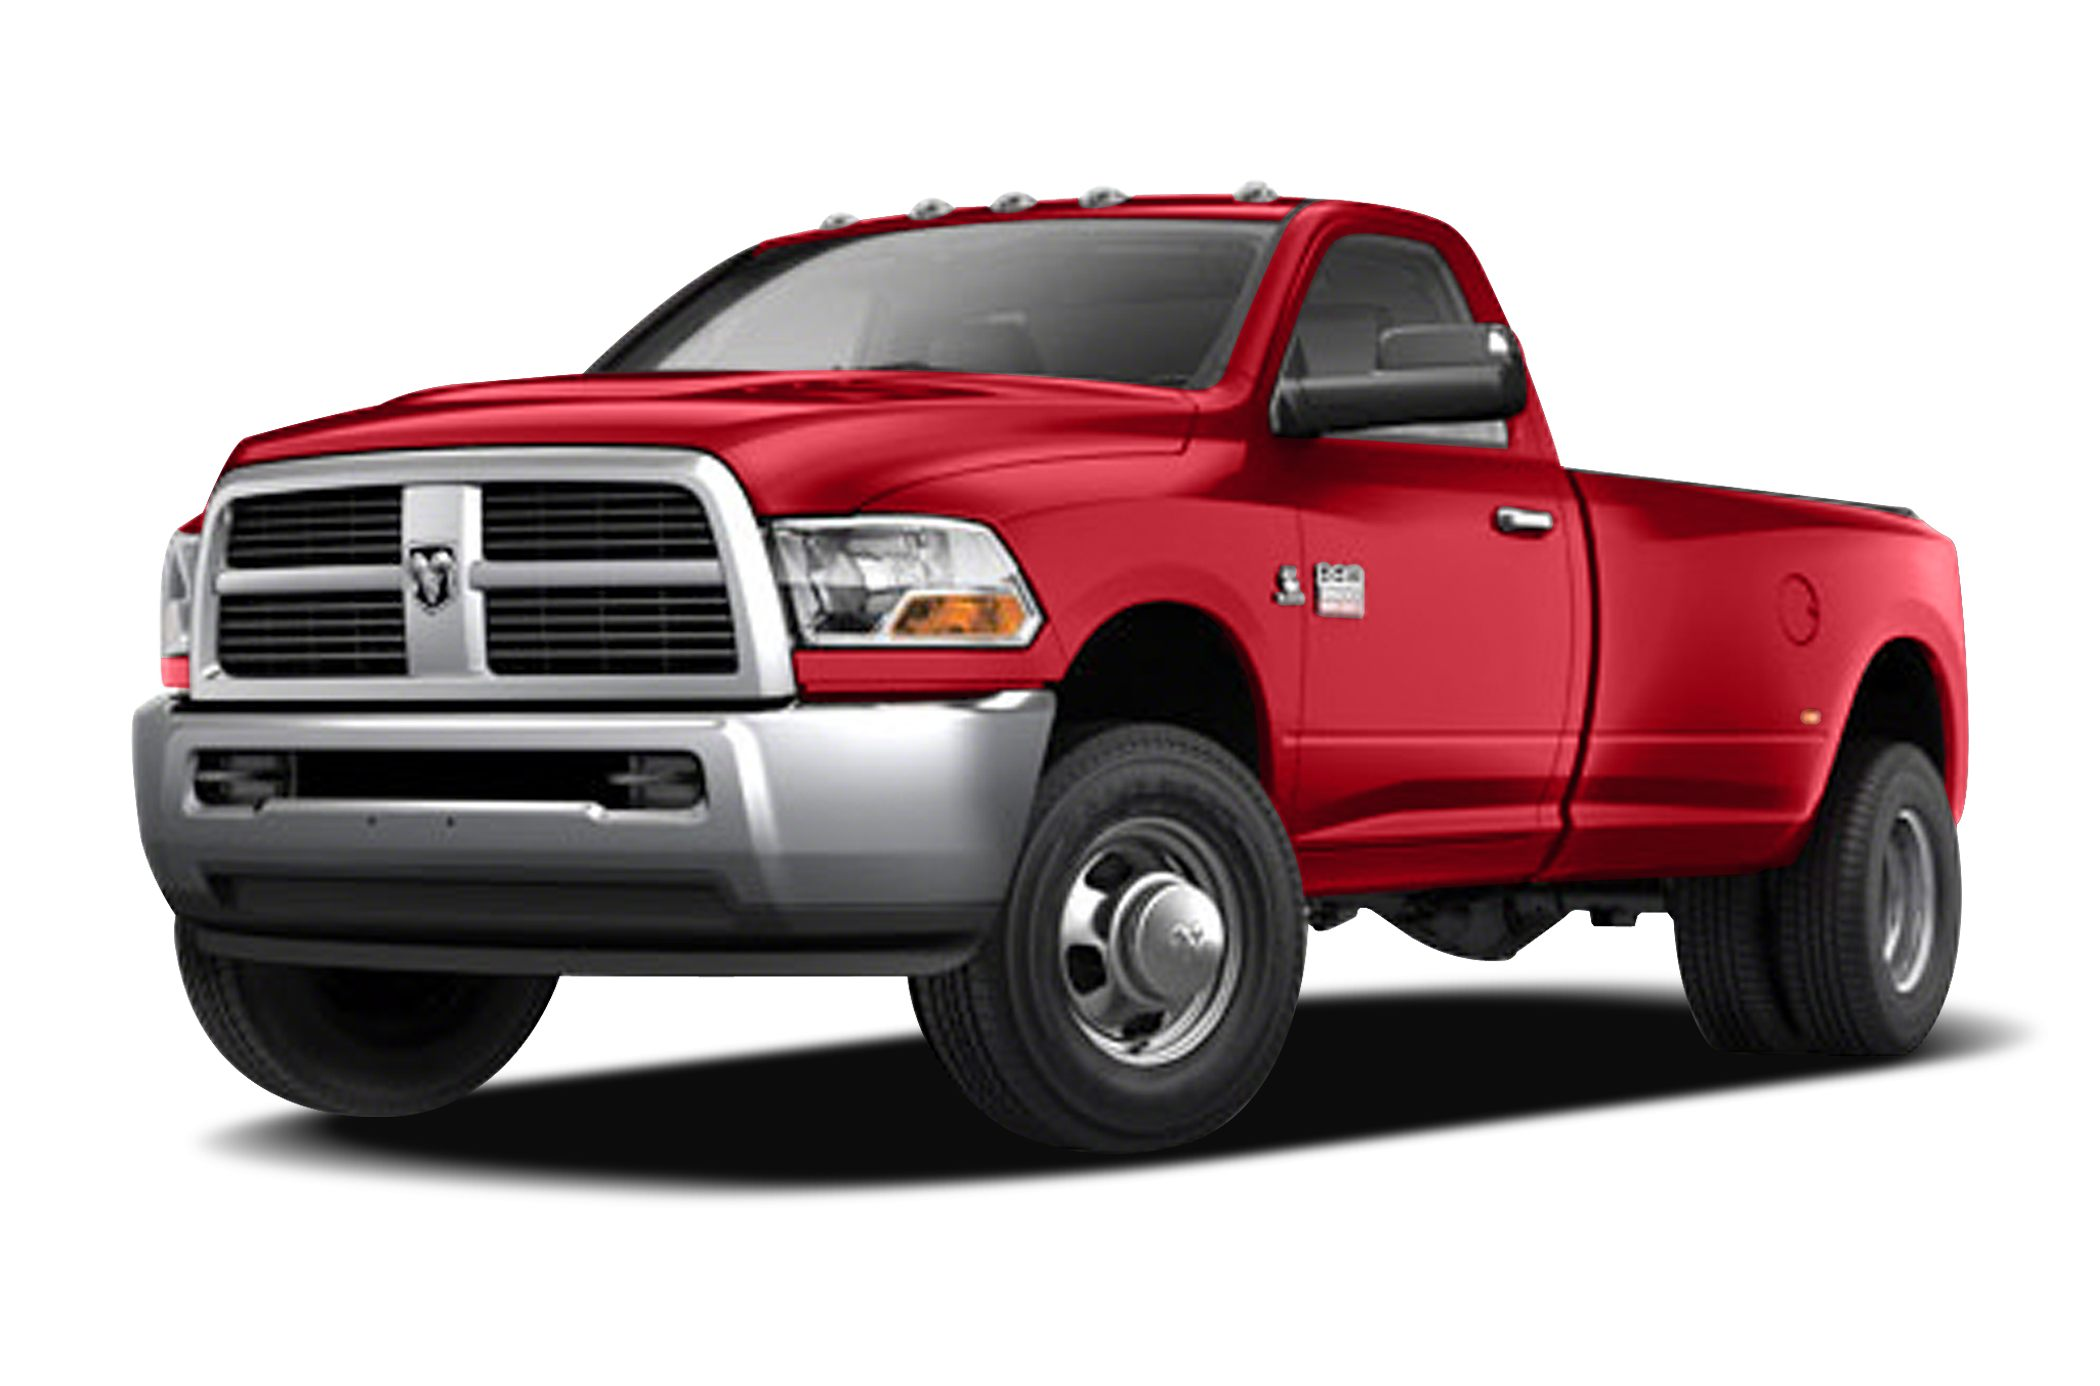 2011 Dodge Ram 3500